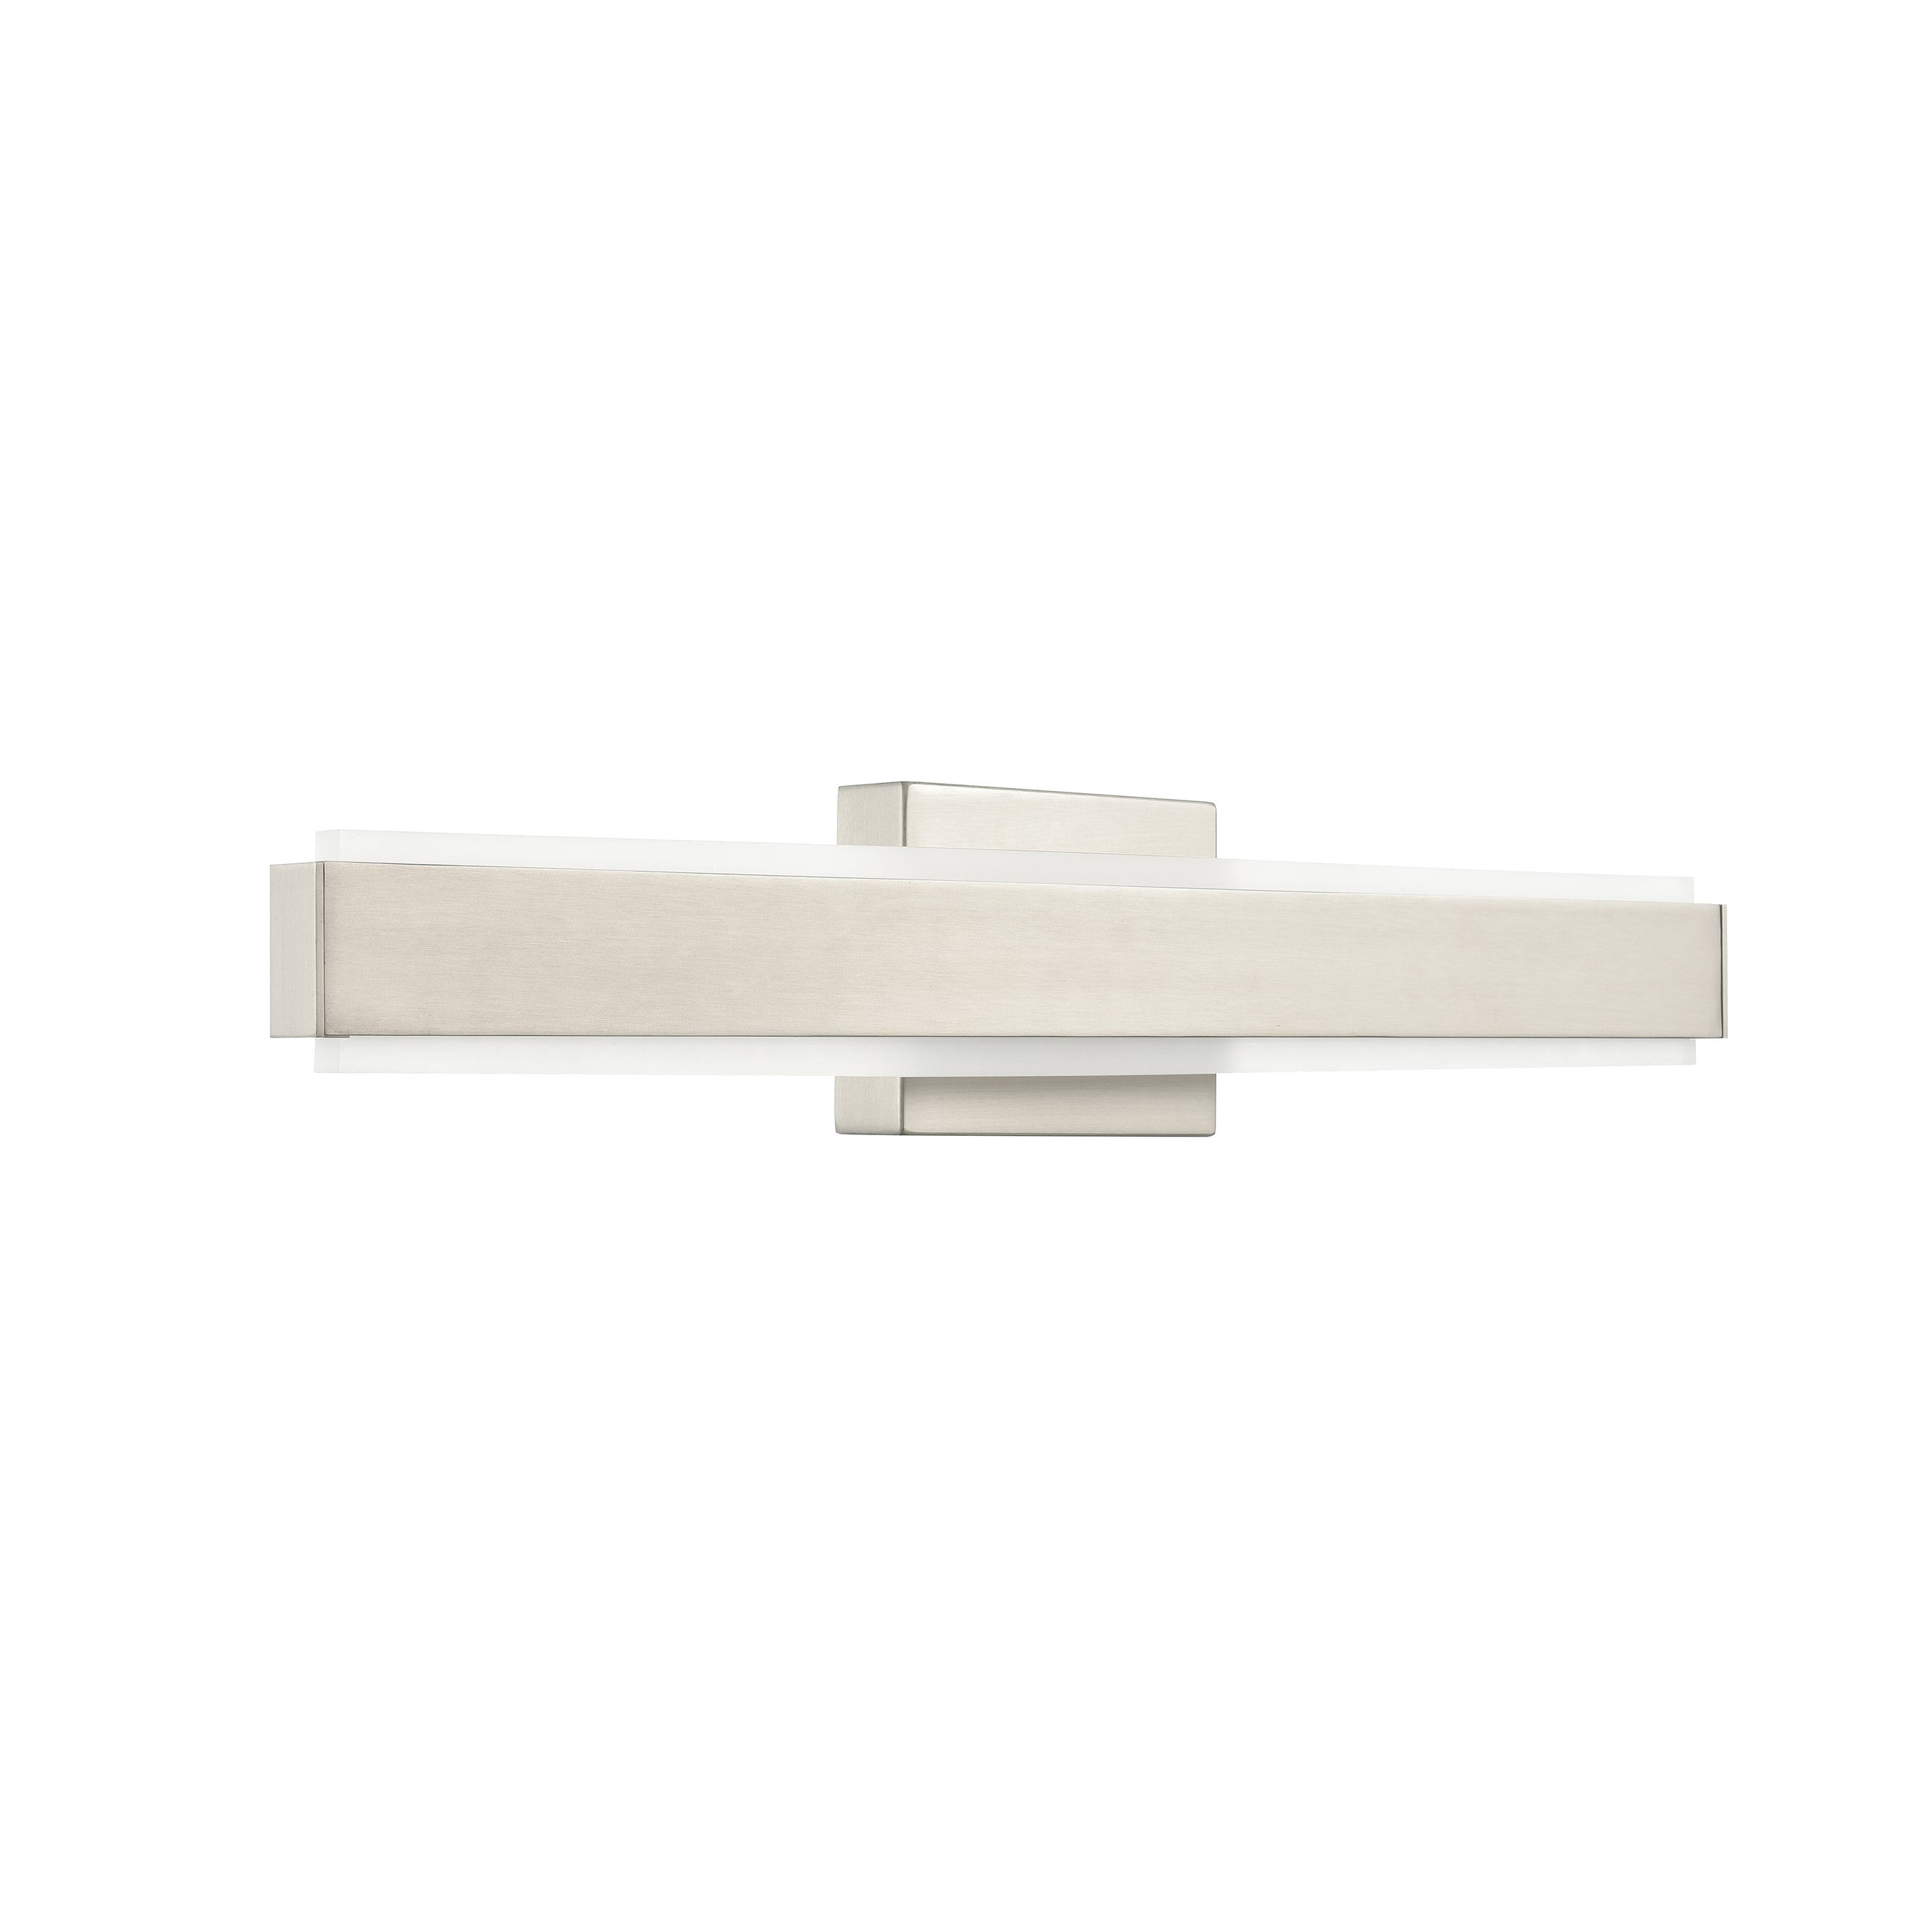 Sevano 24 inch LED Bathroom Vanity Light